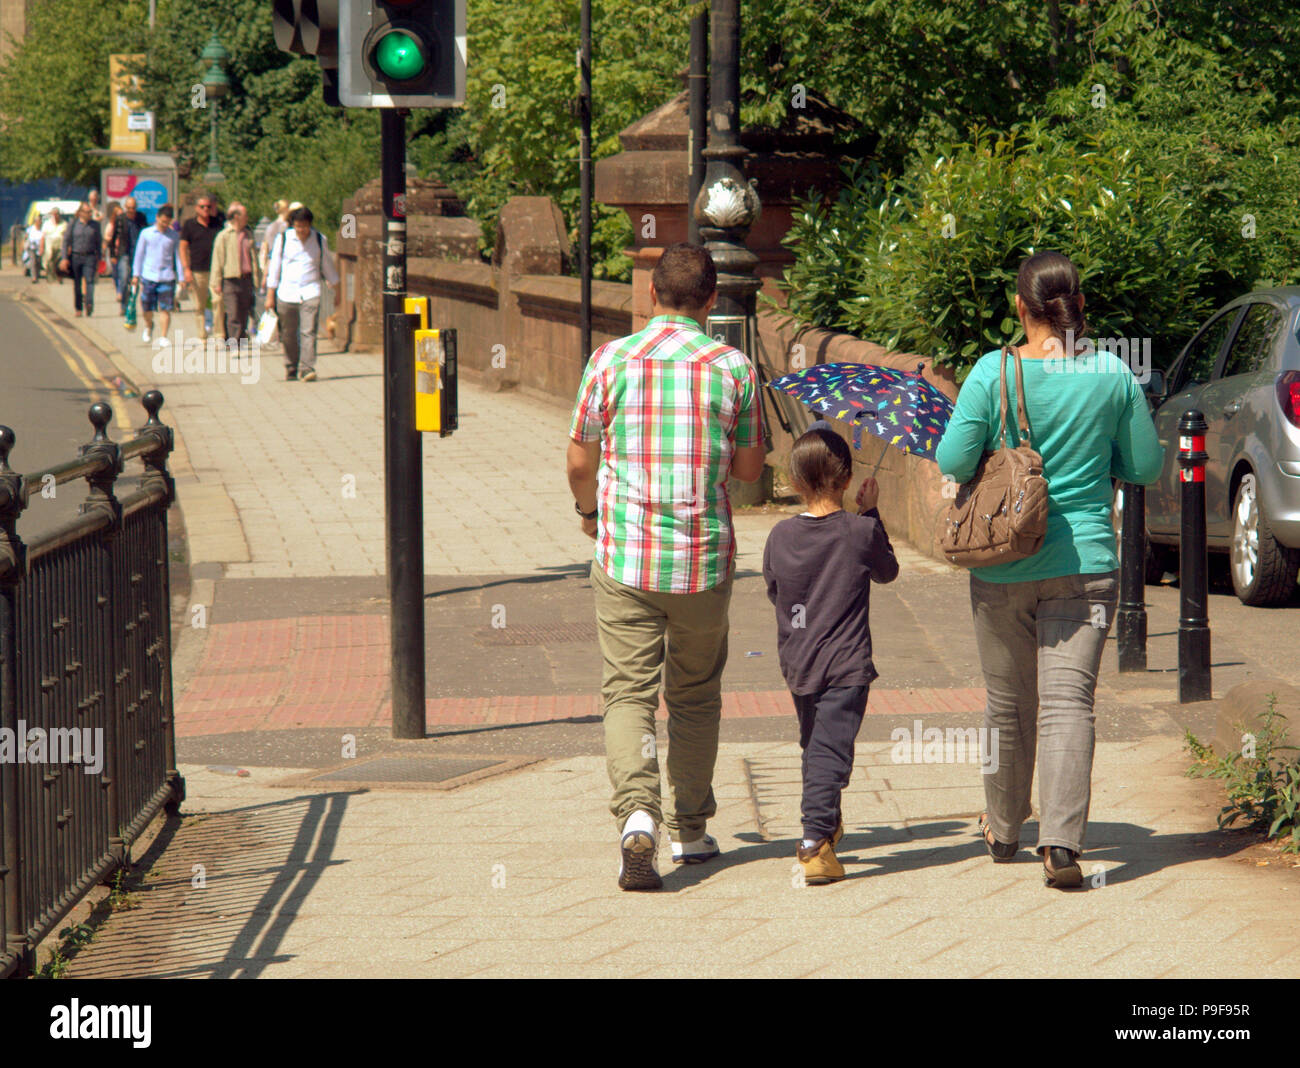 Glasgow, Scotland, UK 18th July. UK Weather:Sunny weather brings out locals and tourists in the city.s Partick in the west end to enjoy the warm weather of the middle of summer. Gerard Ferry/Alamy news - Stock Image